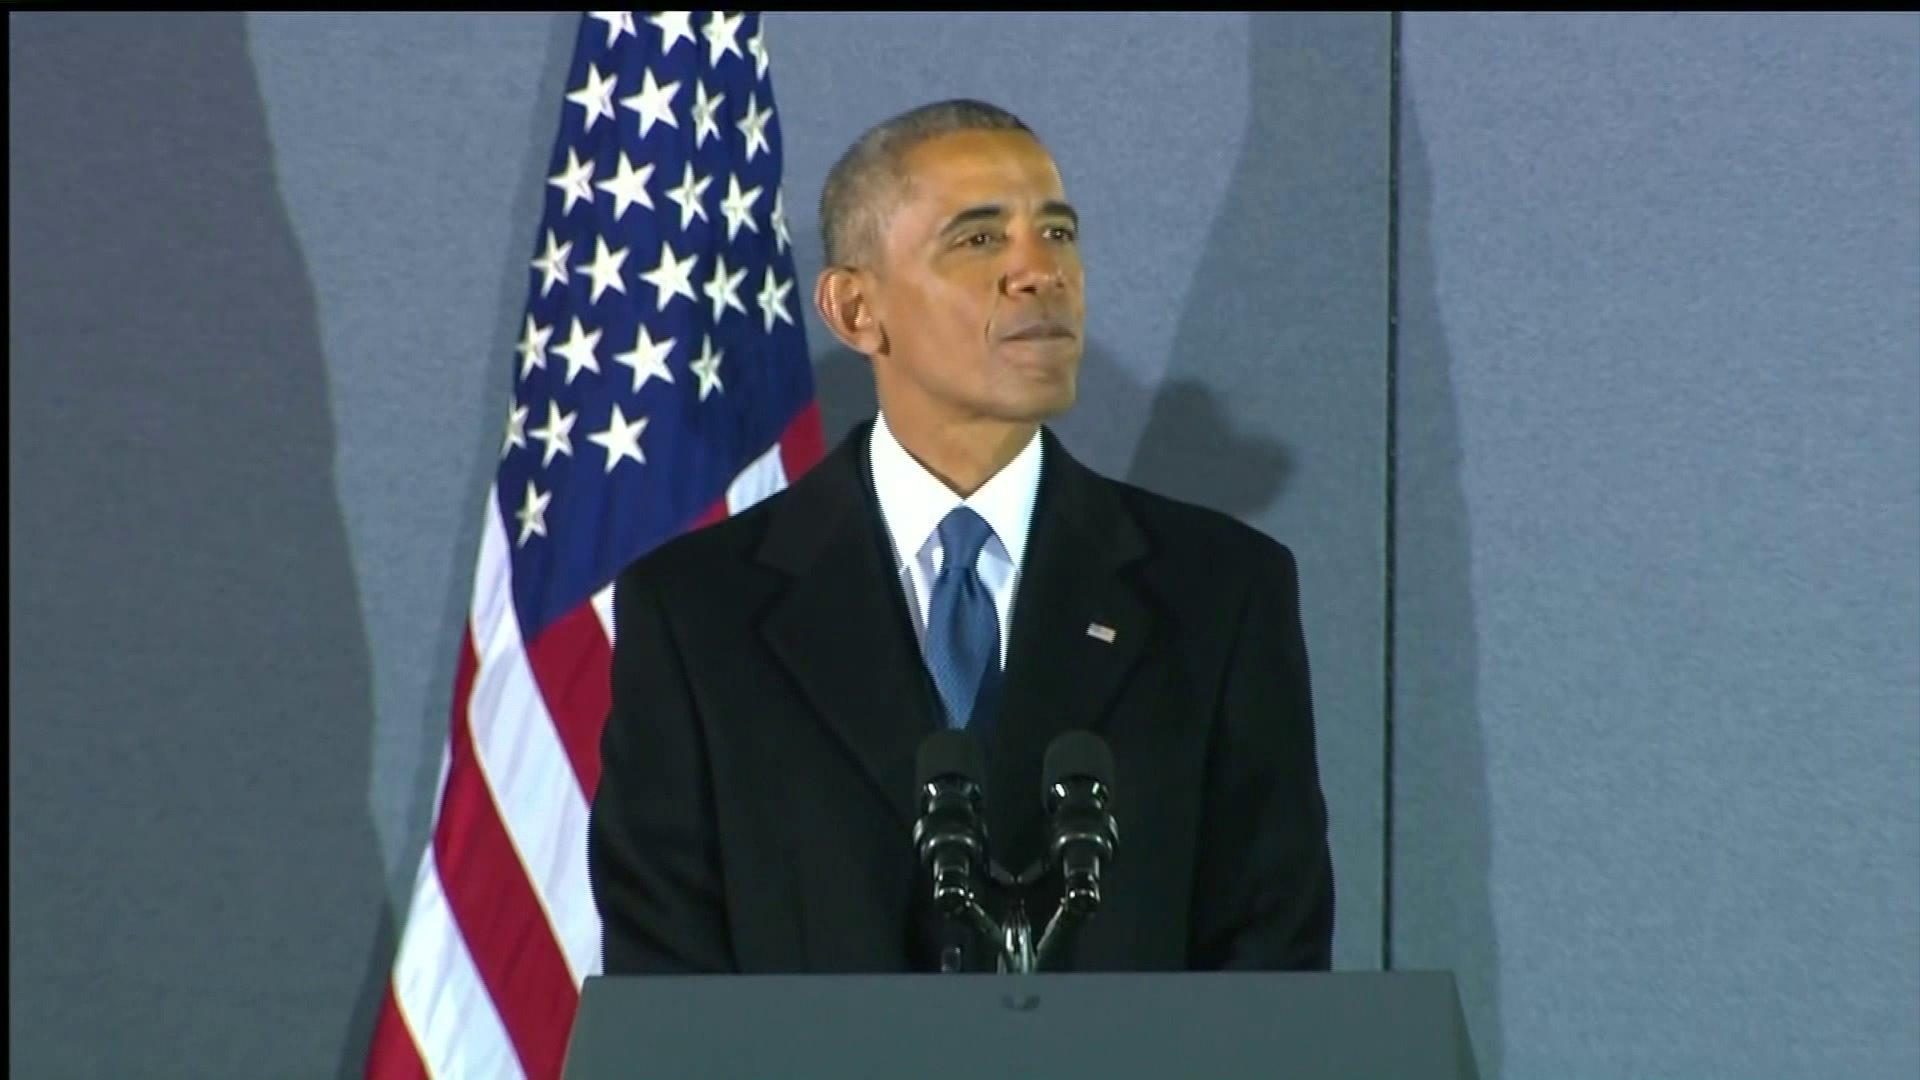 Former President Obama to Deliver First Post-Presidency Speech in Chicago